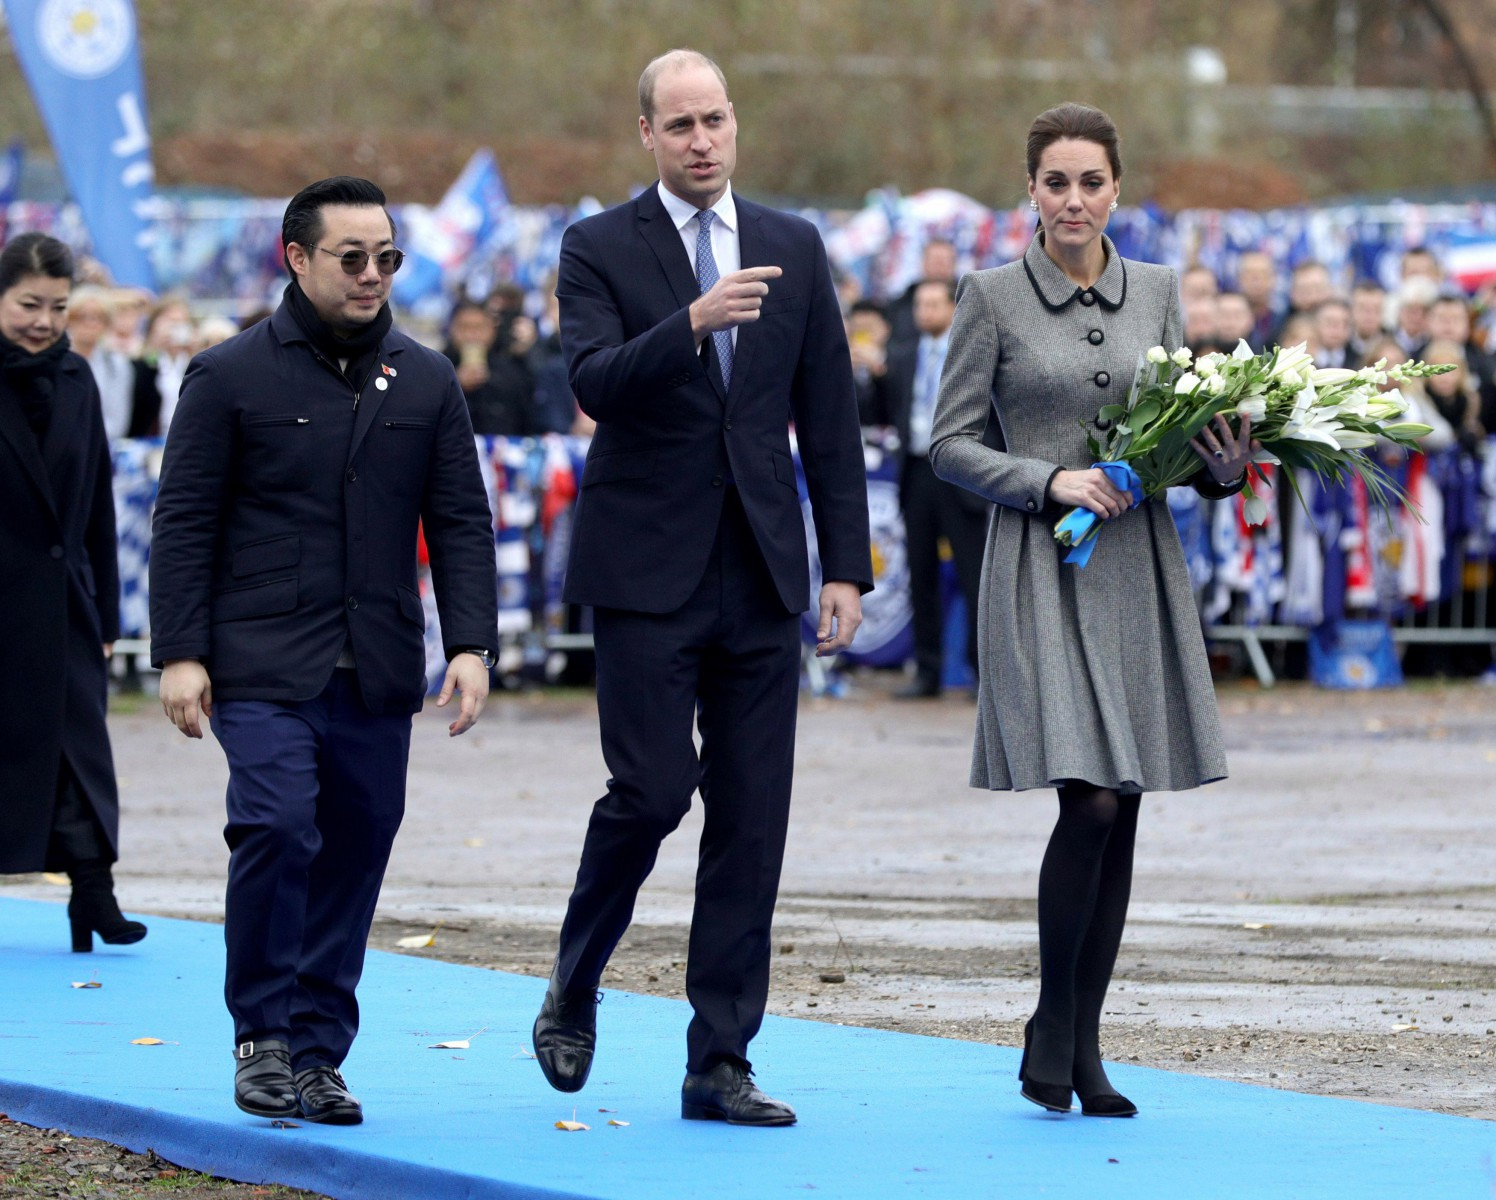 Kate Middleton carried flowers to lay among the thousands of tributes